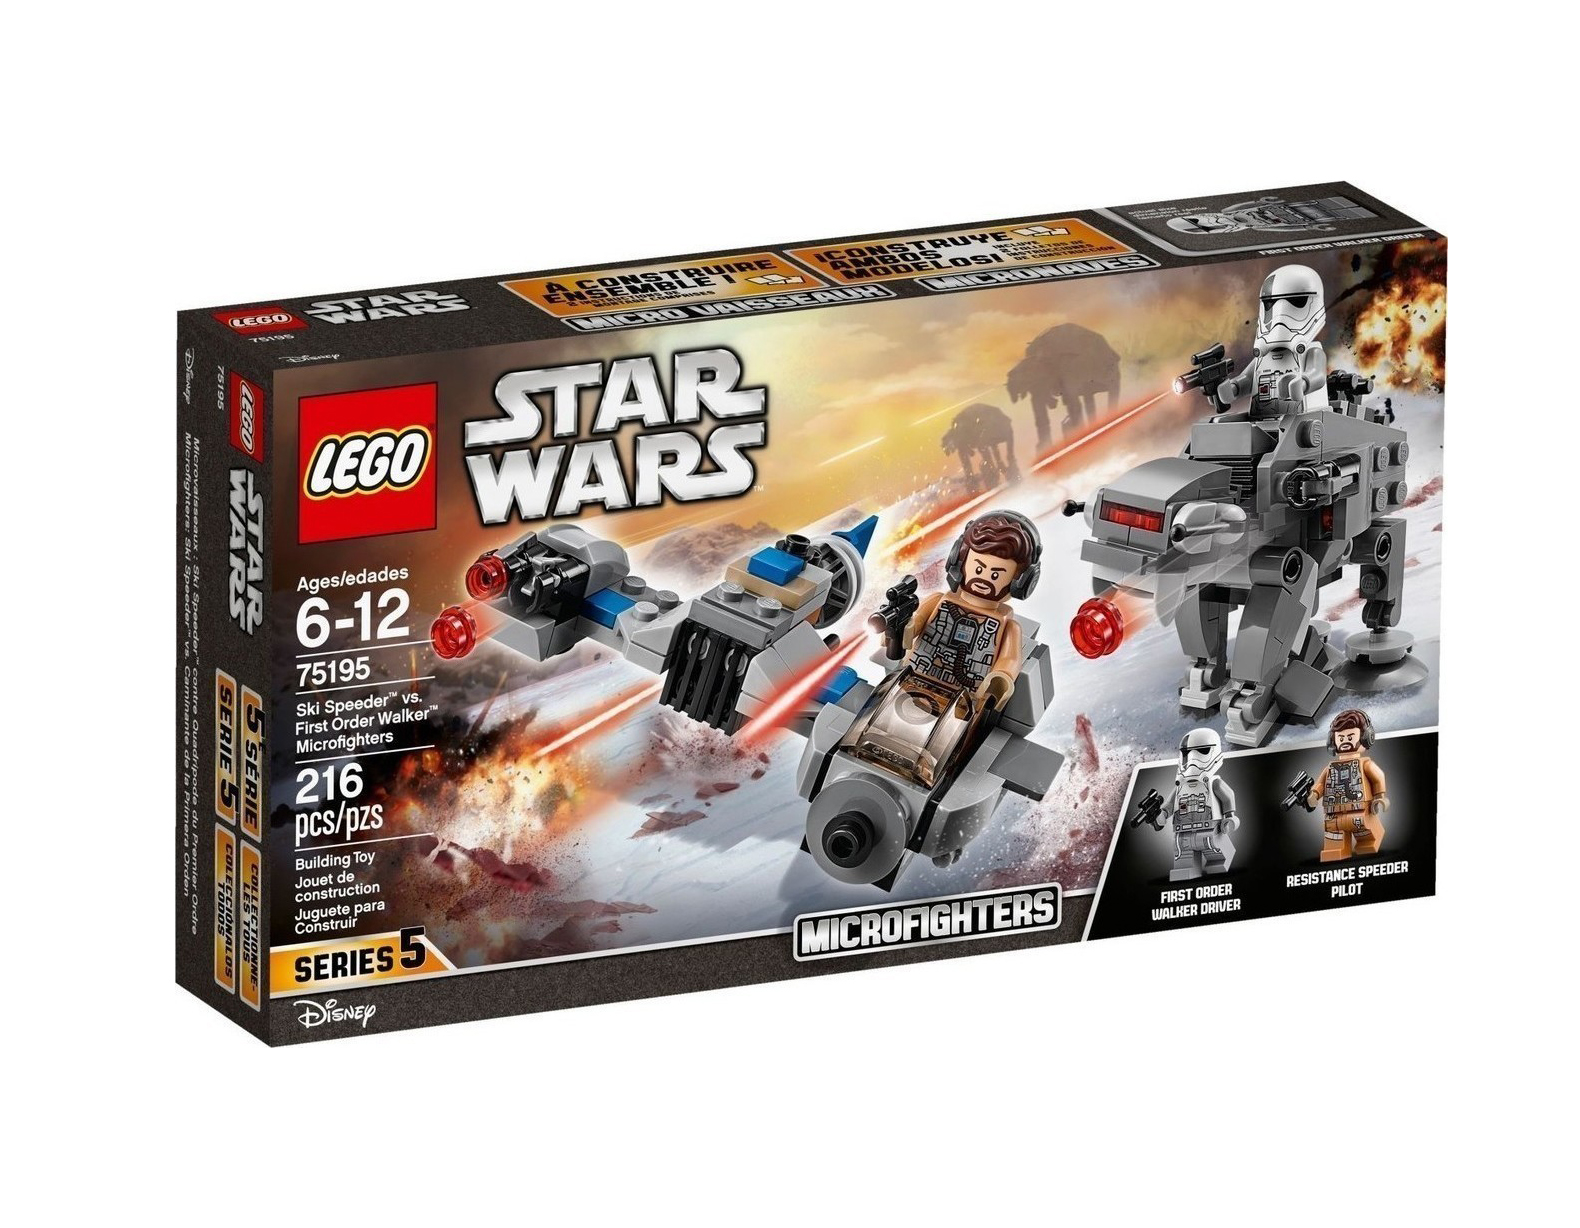 Lego Star Wars: Ski Speeder vs First Order Walker Microfighters 75195